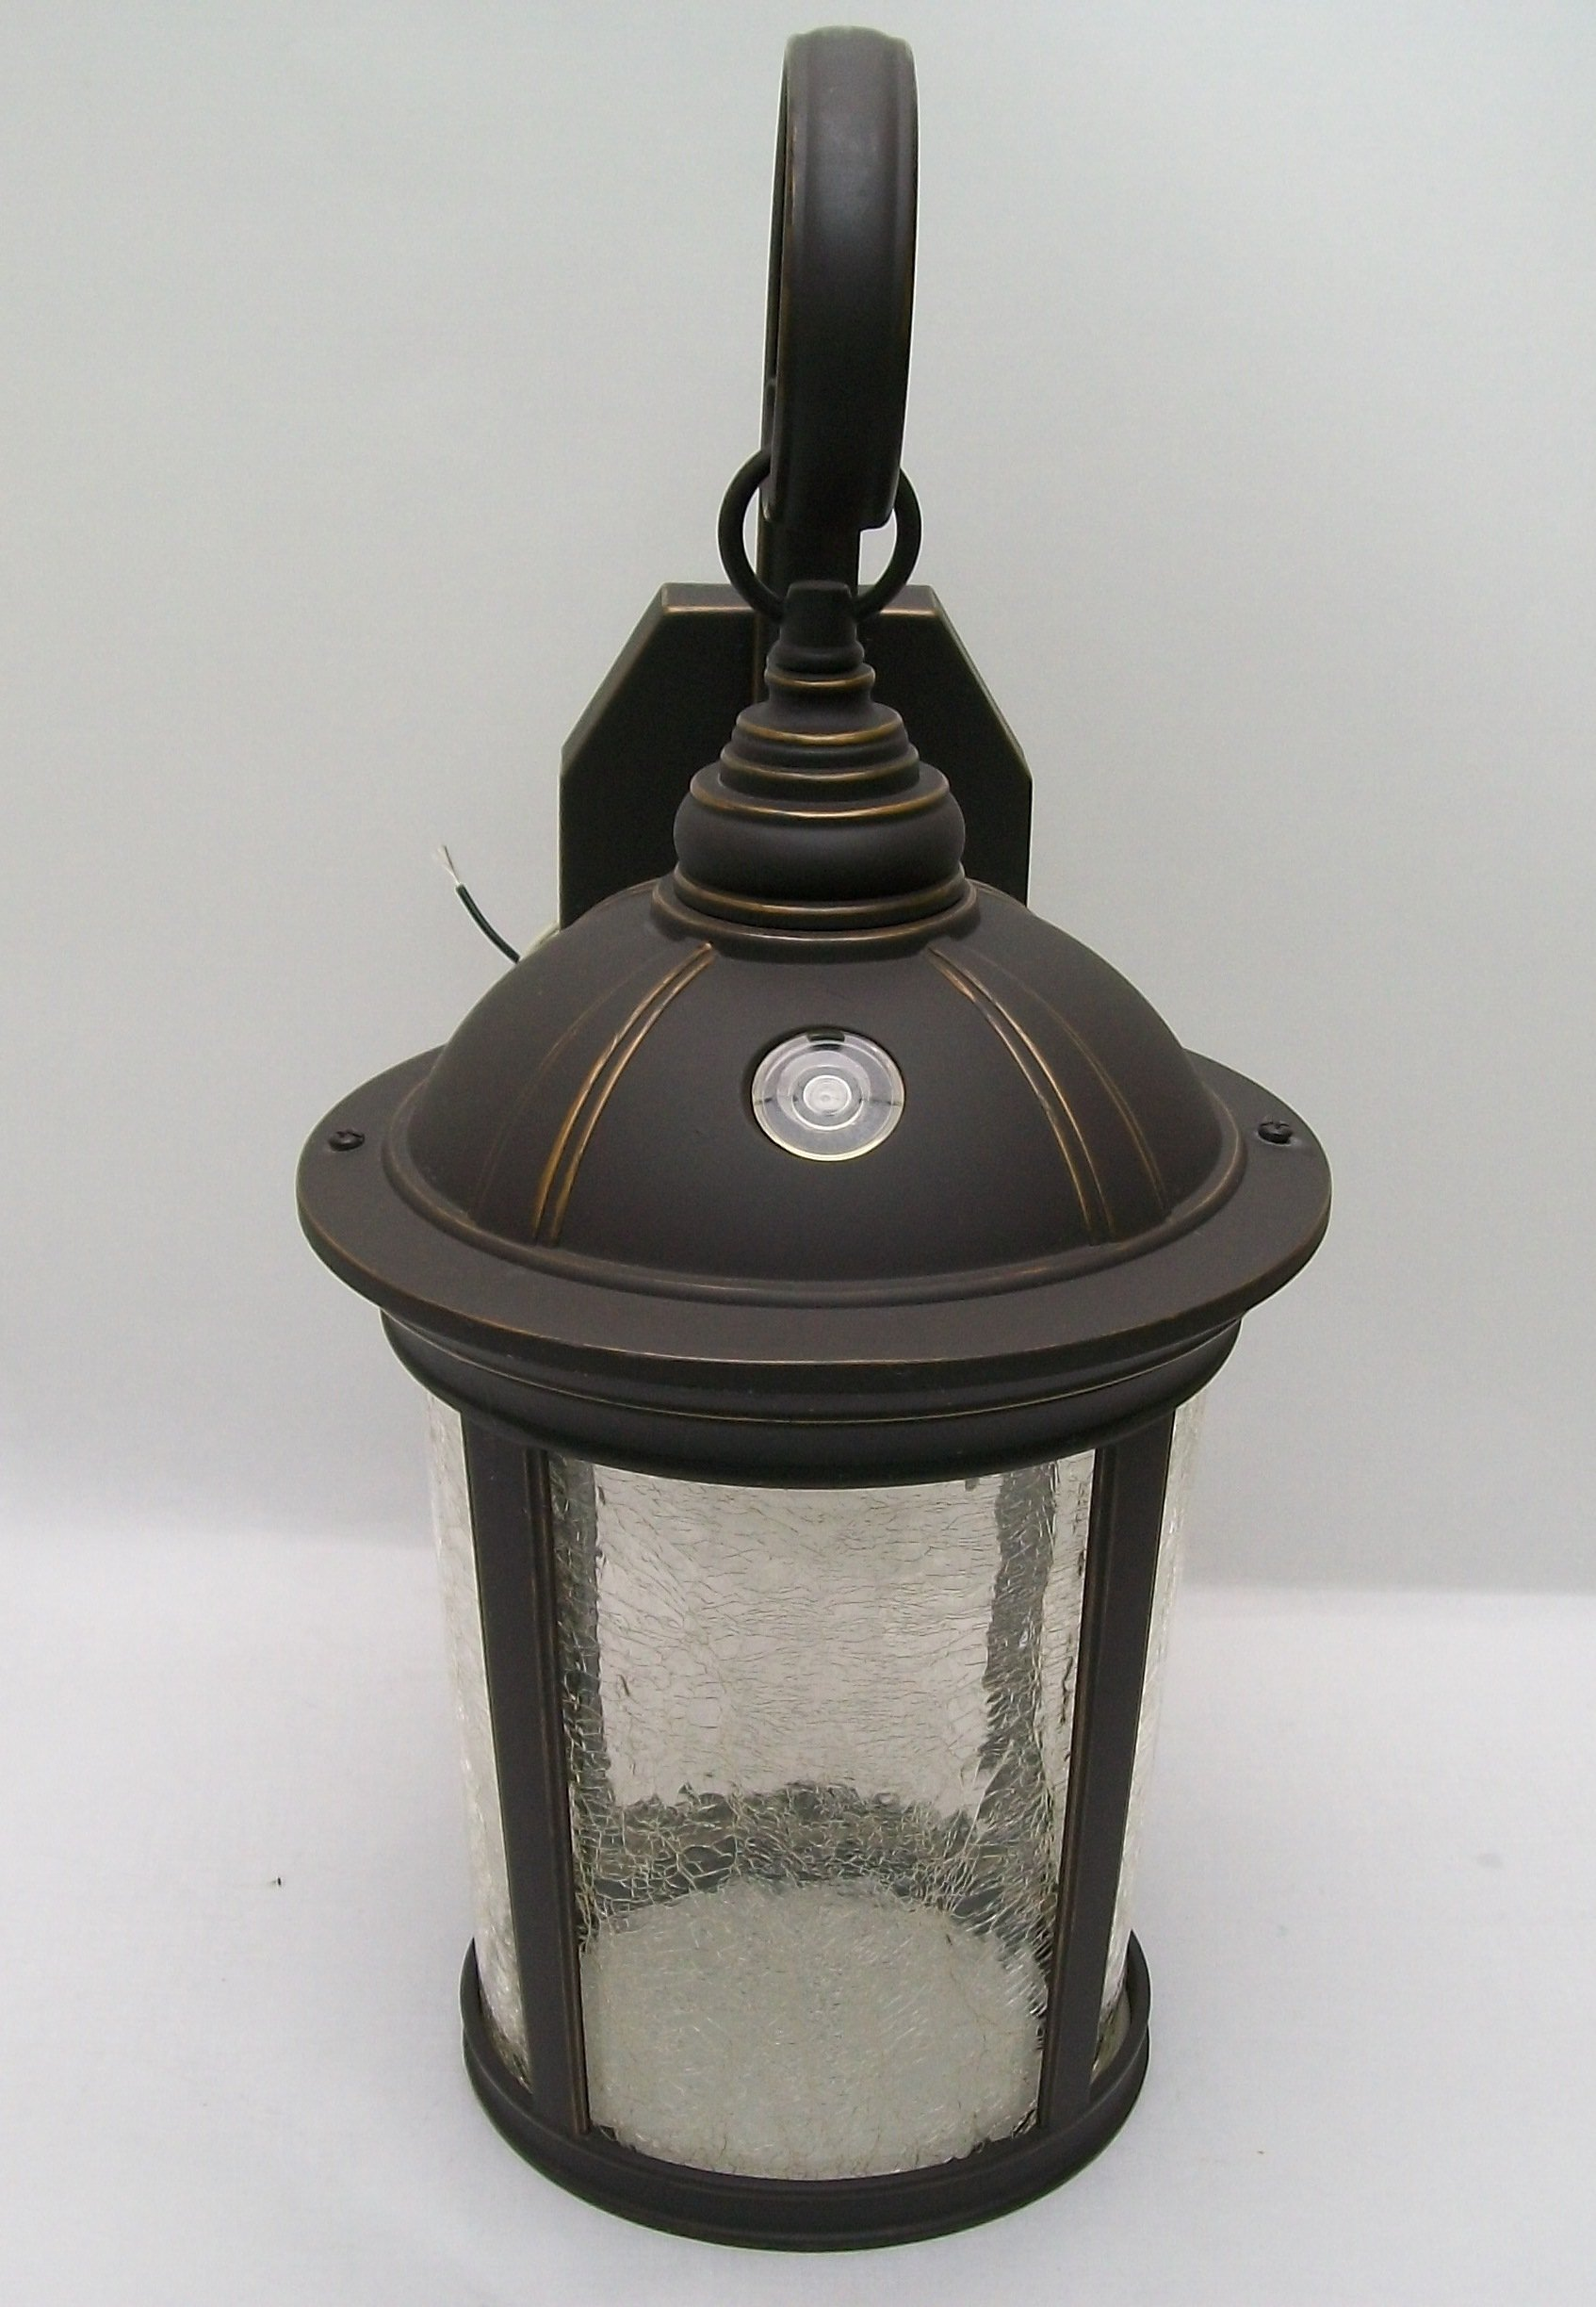 Altair Lighting Outdoor LED Lantern, 950 Lumen LED, Dusk/Dawn, With Optional Arm Kit, Aged Bronze Patina Finish - AL-2150